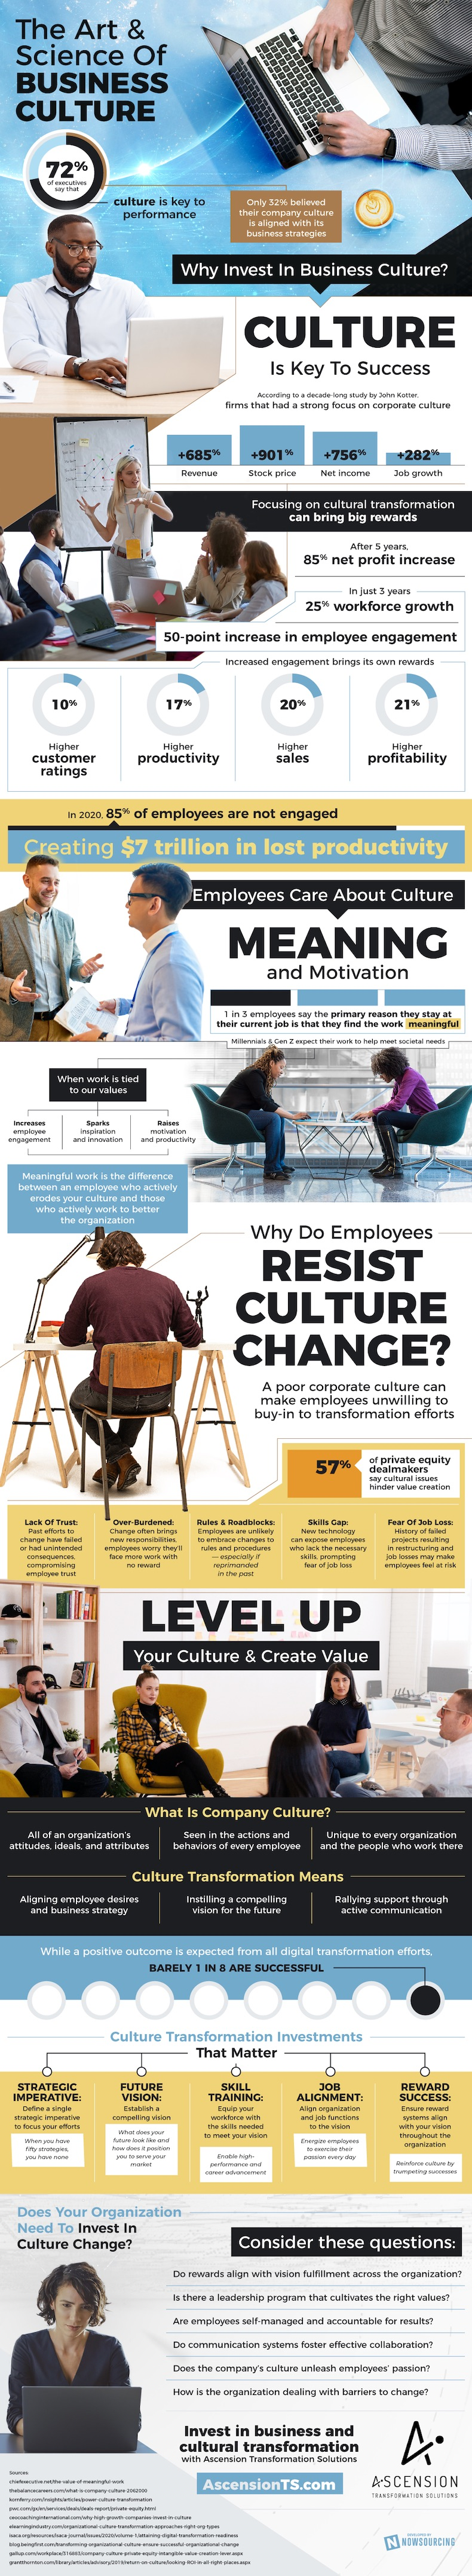 The art and science of company culture infographic